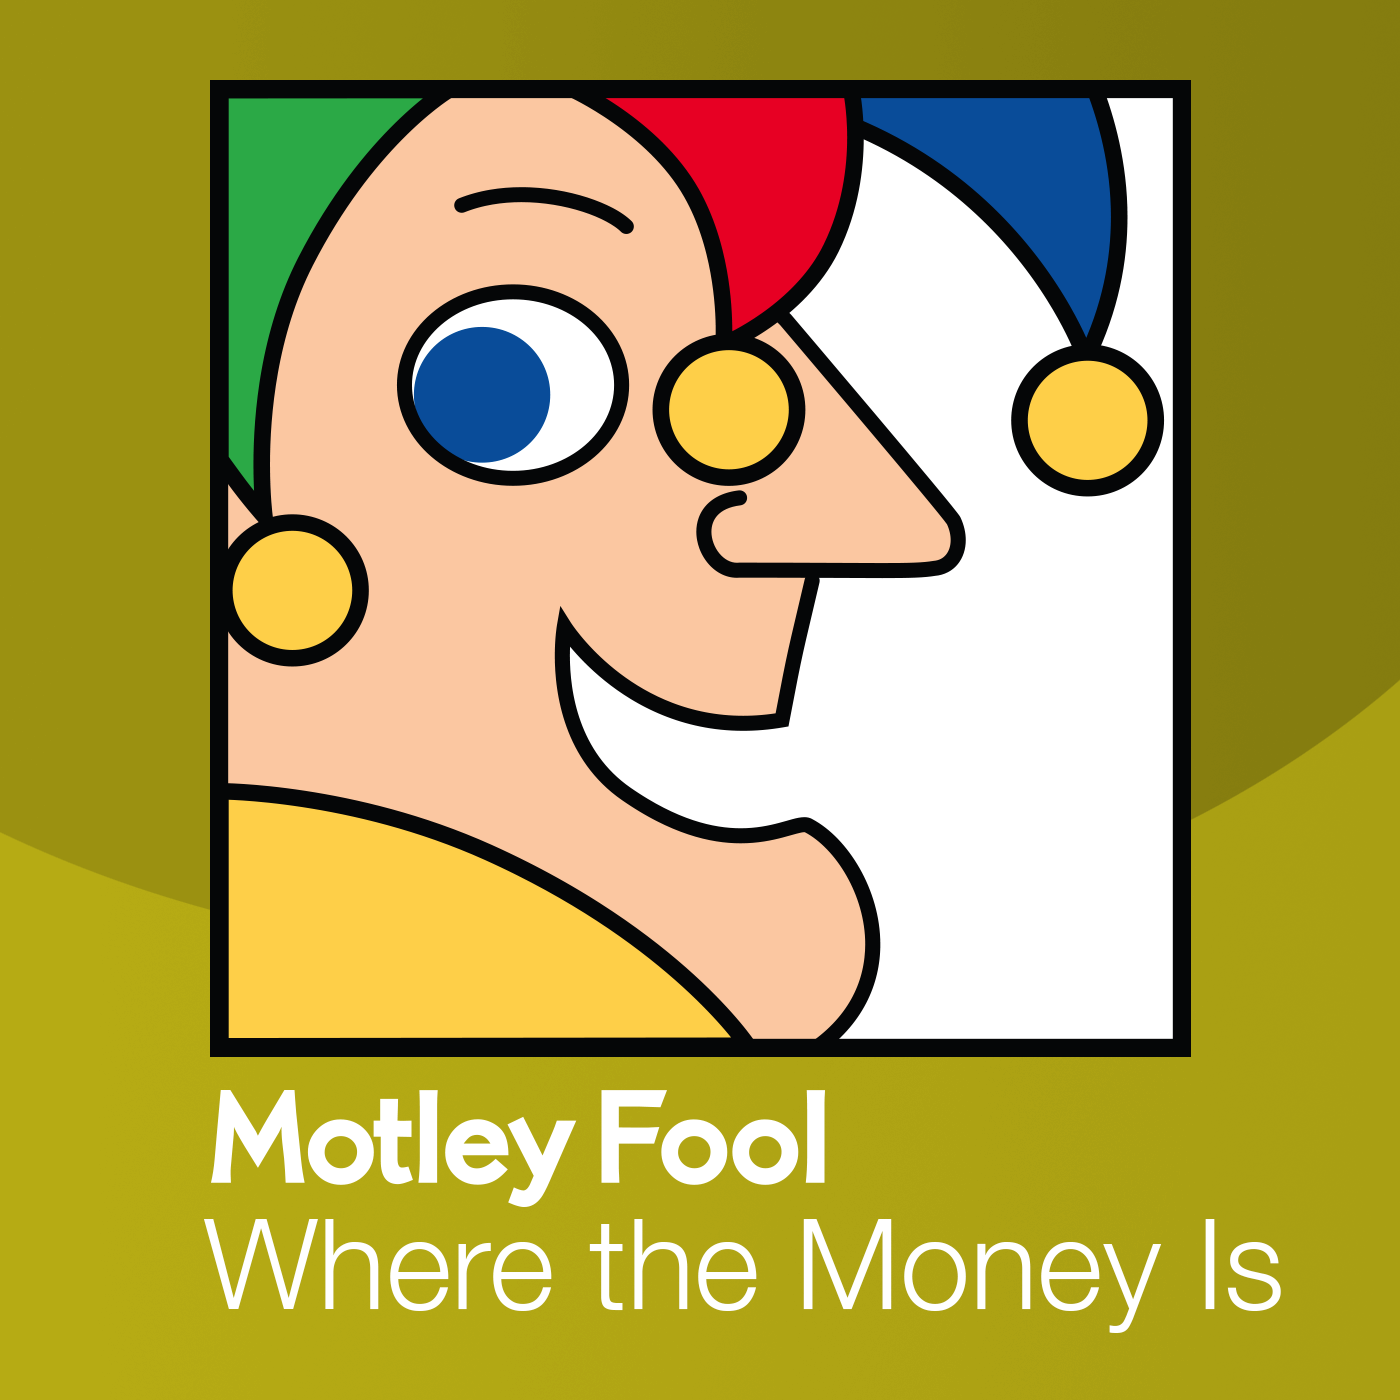 Where the Money Is 02.12.14